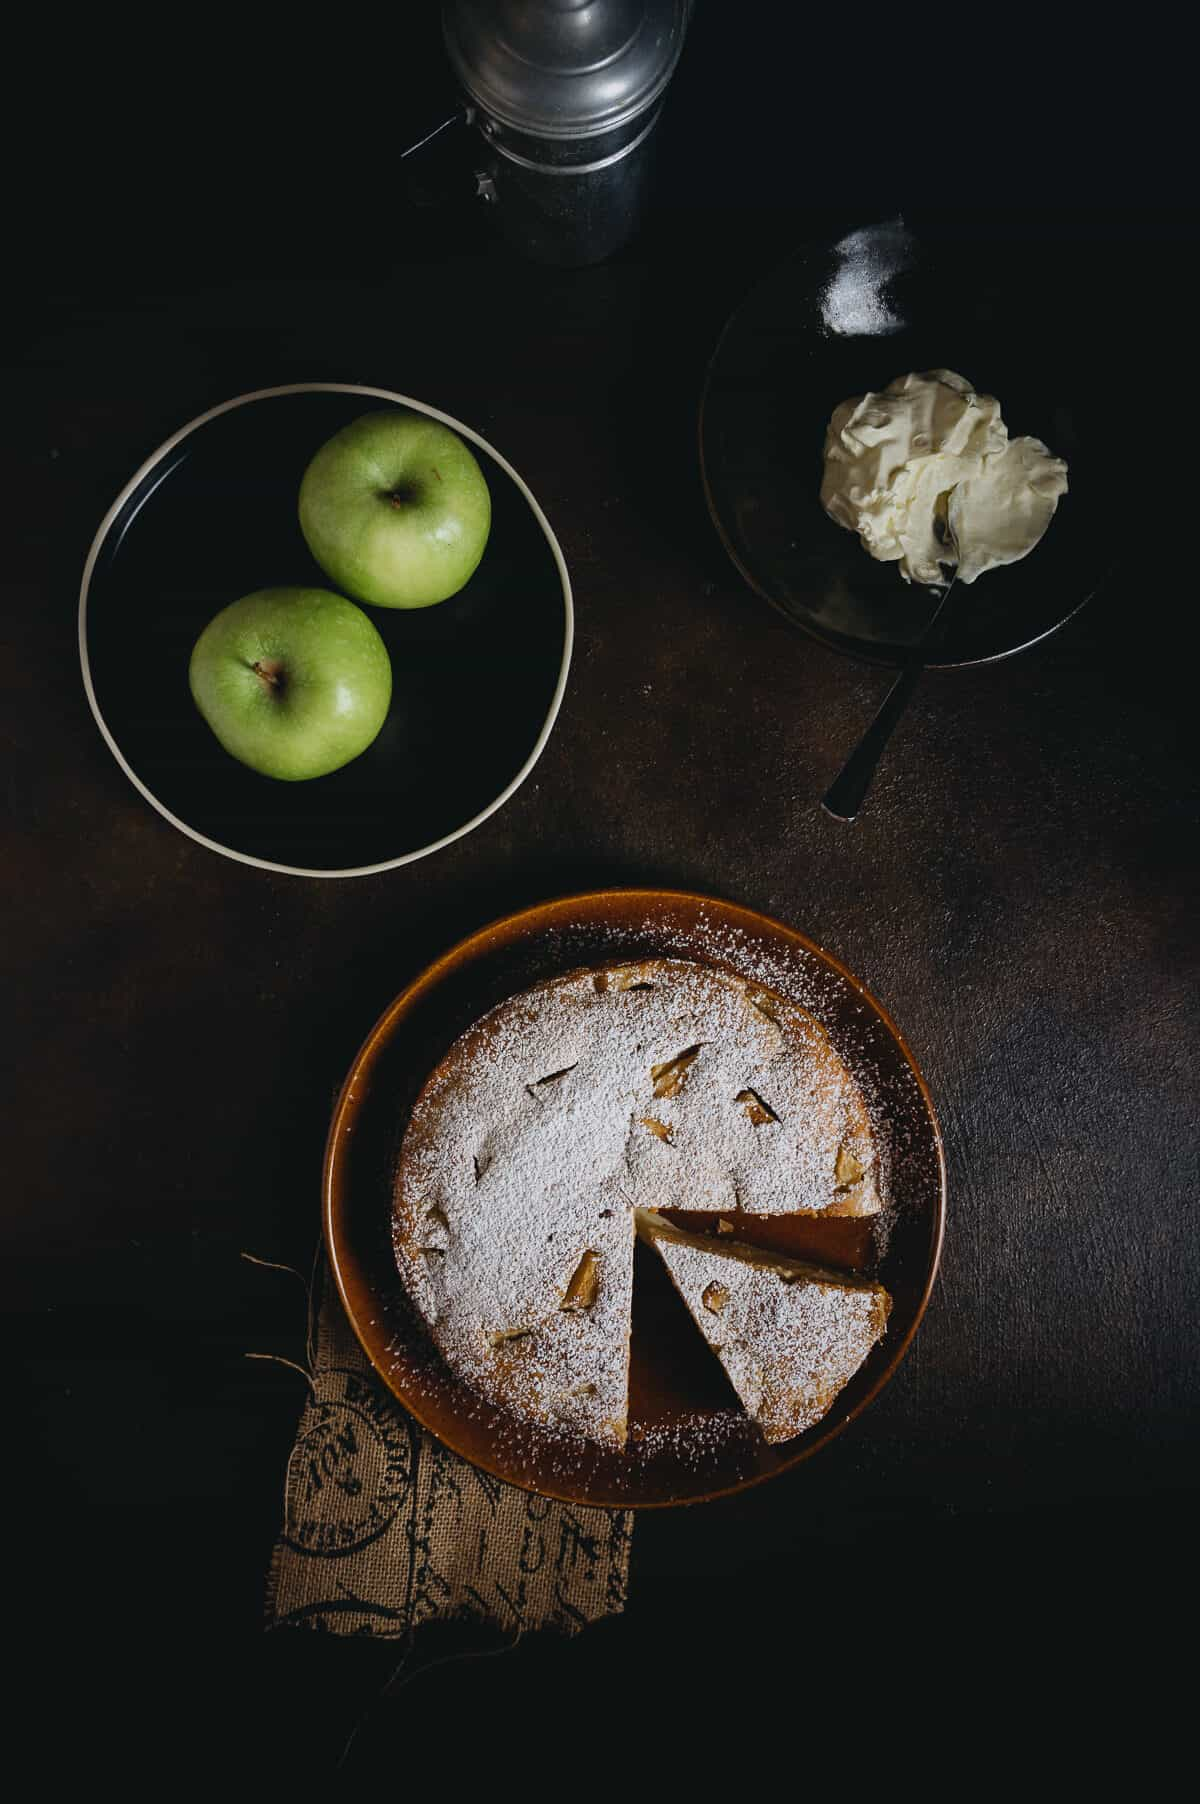 a sliced apple cake on a table with whipped cream and two apples on a dark plate